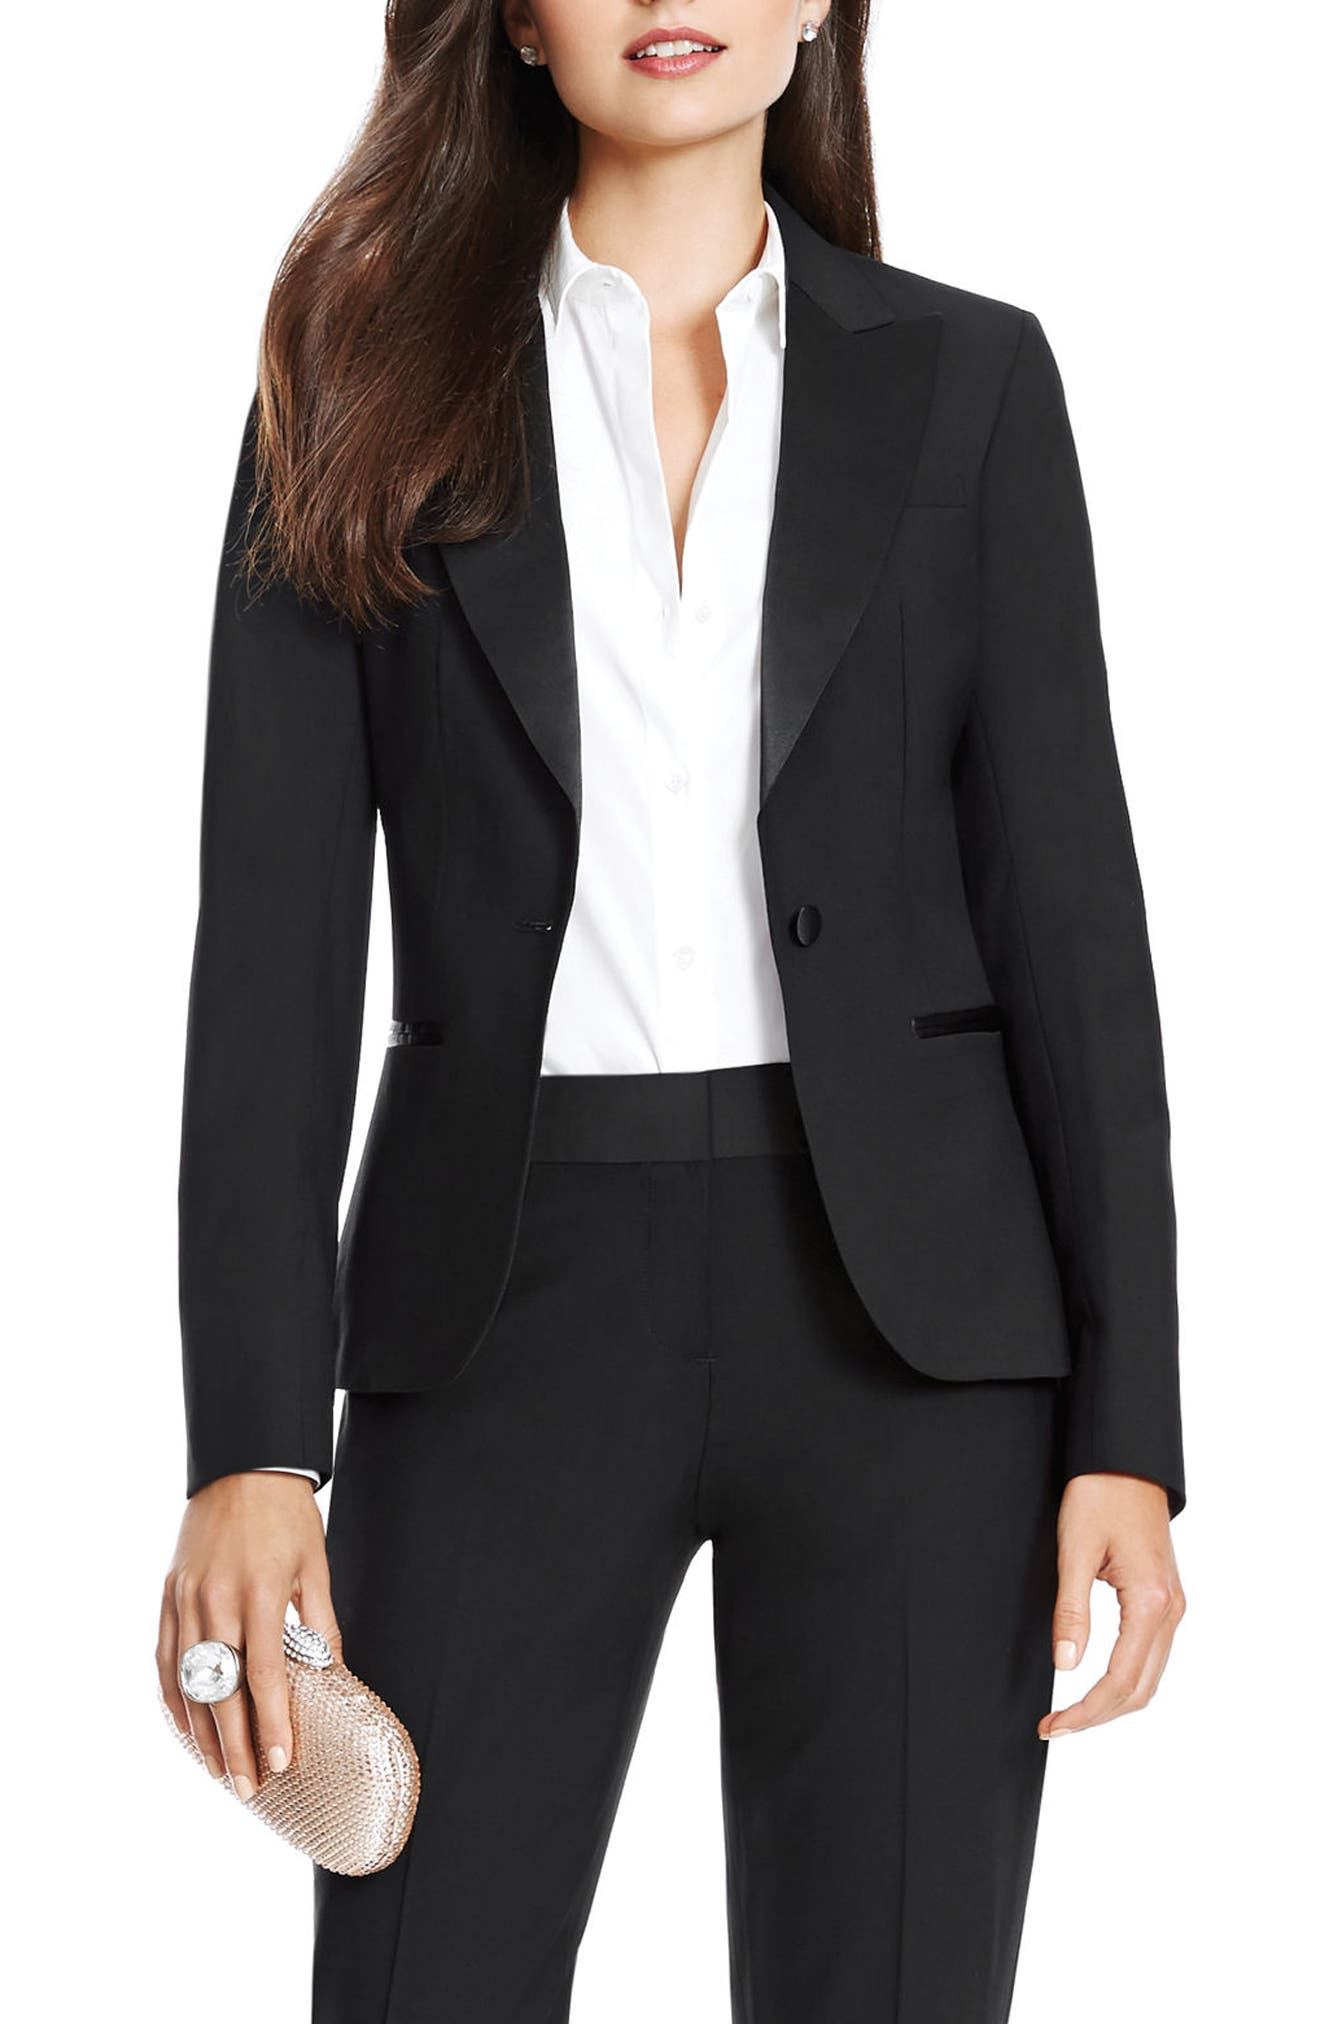 Main Image - After Six Stretch Wool Tuxedo Jacket